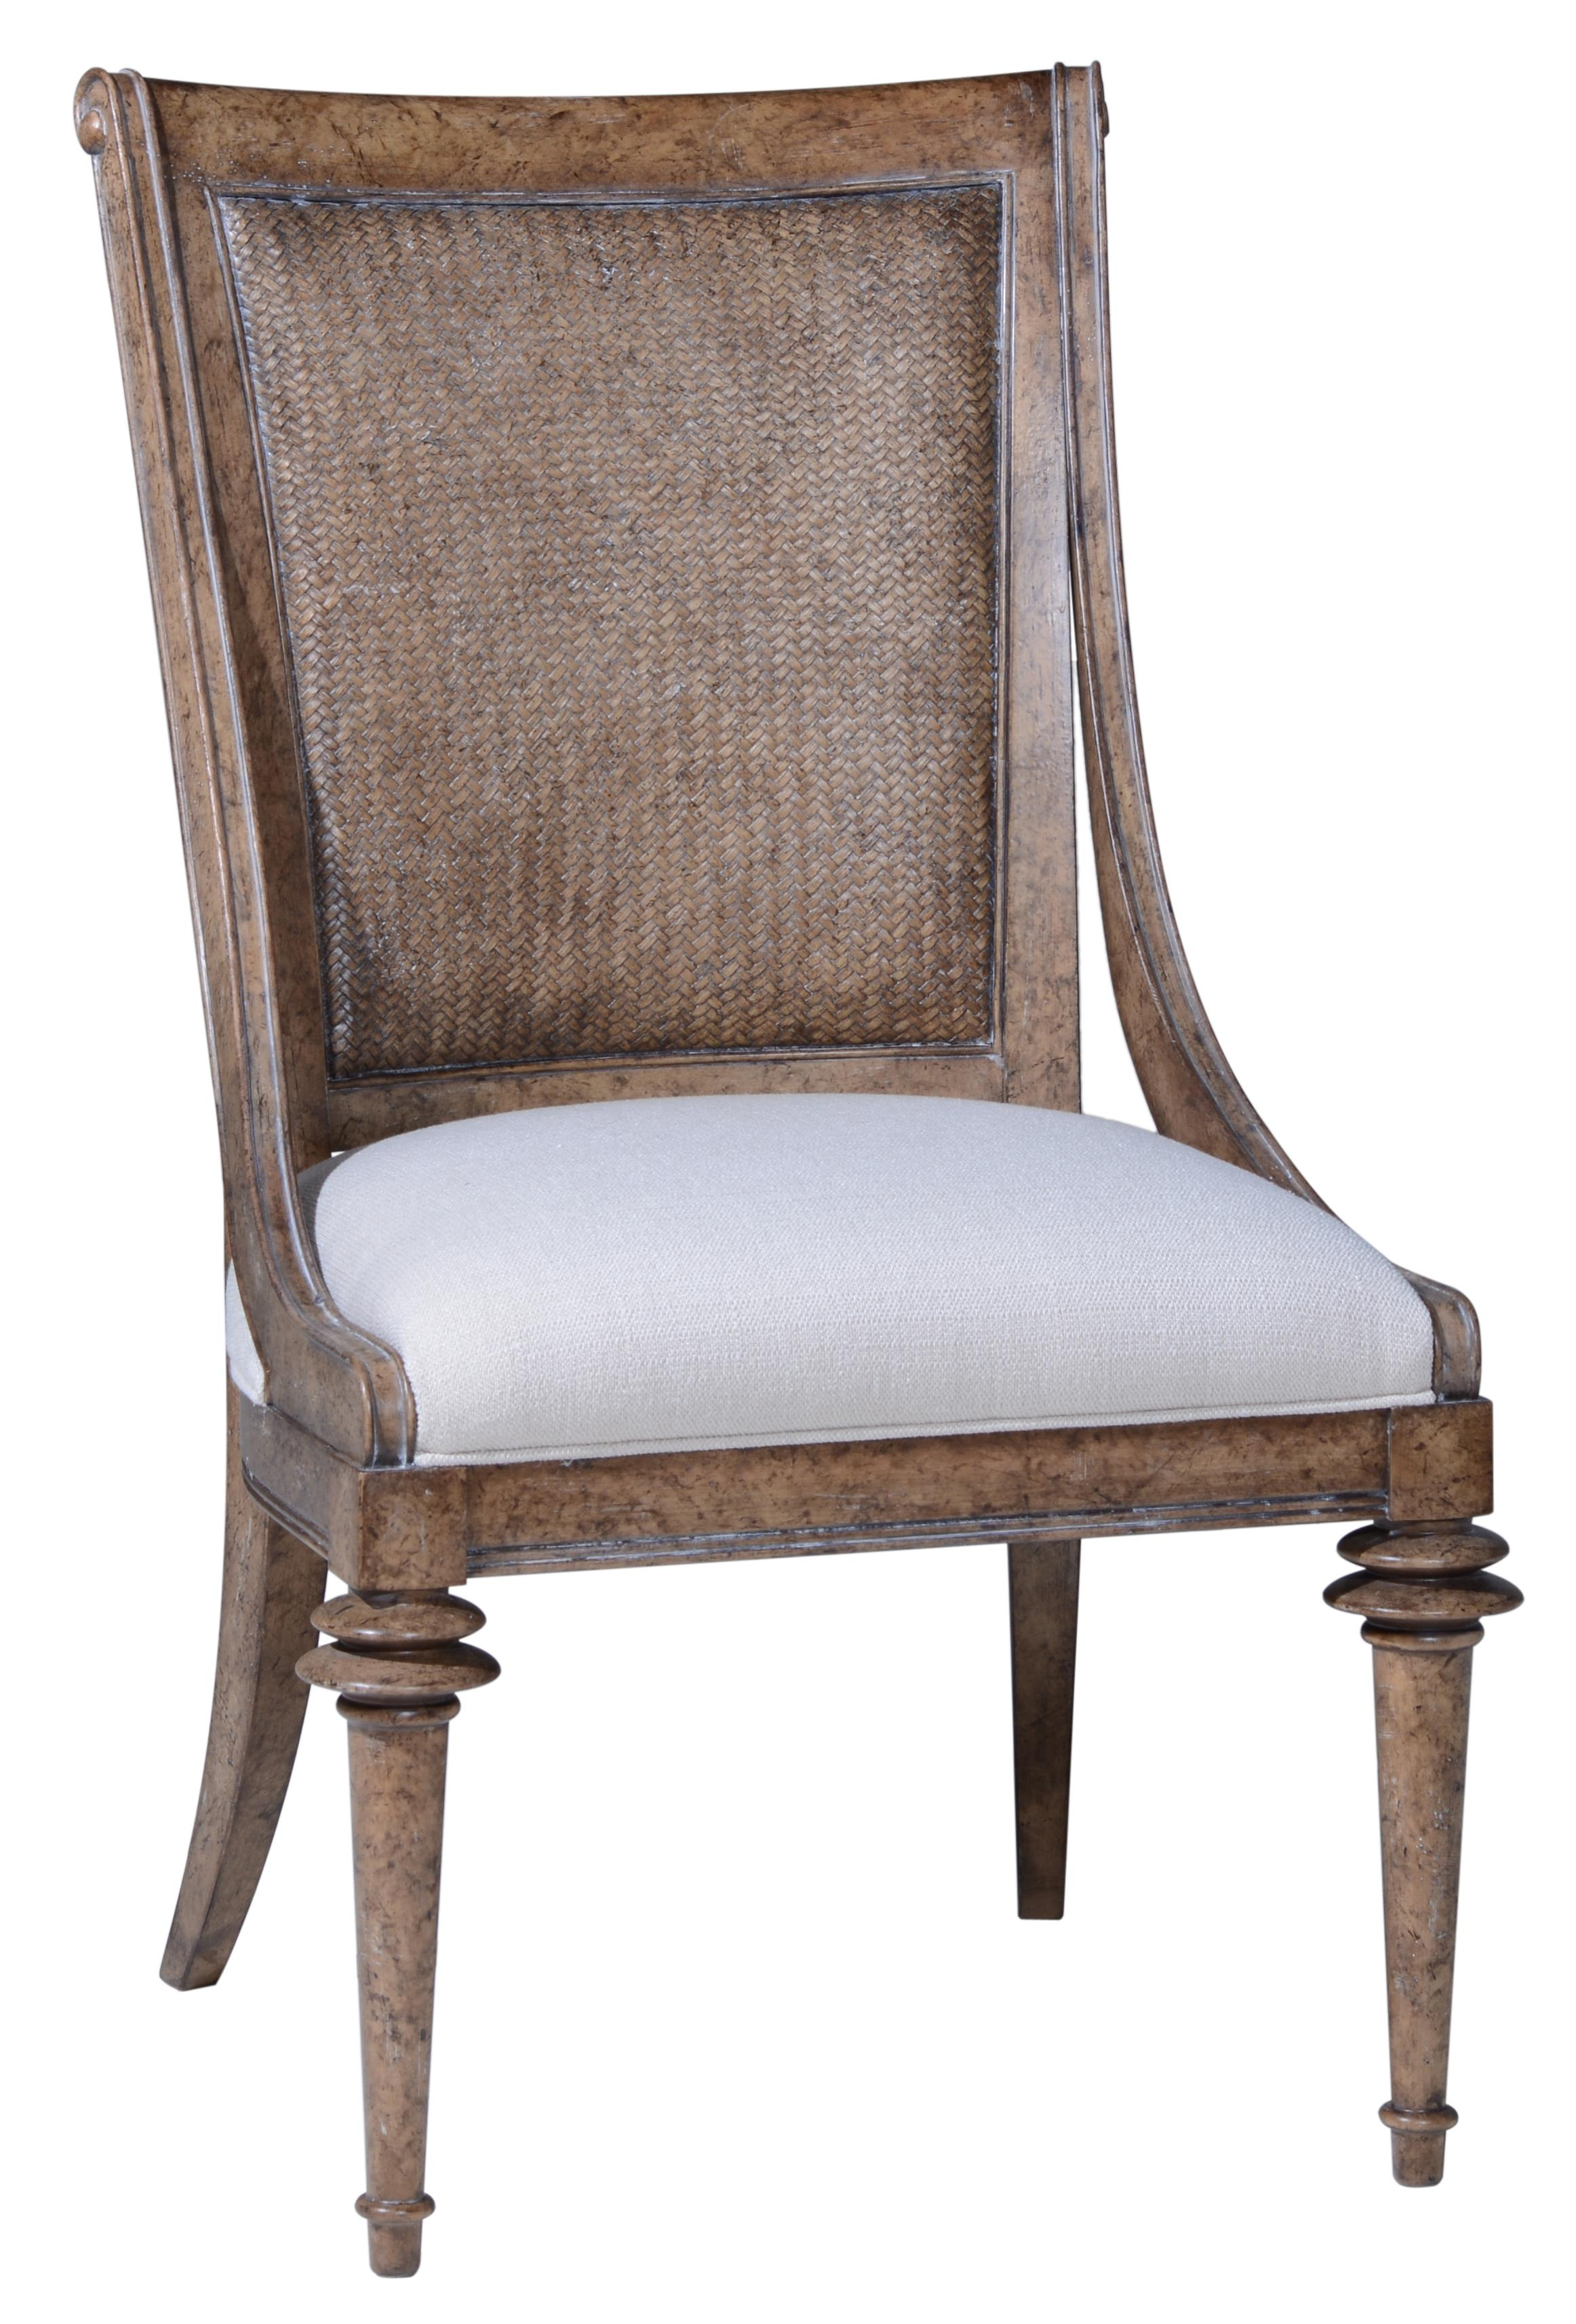 A.R.T. Furniture Inc Pavilion Woven-Back Sling Chair - Item Number: 229200-2608